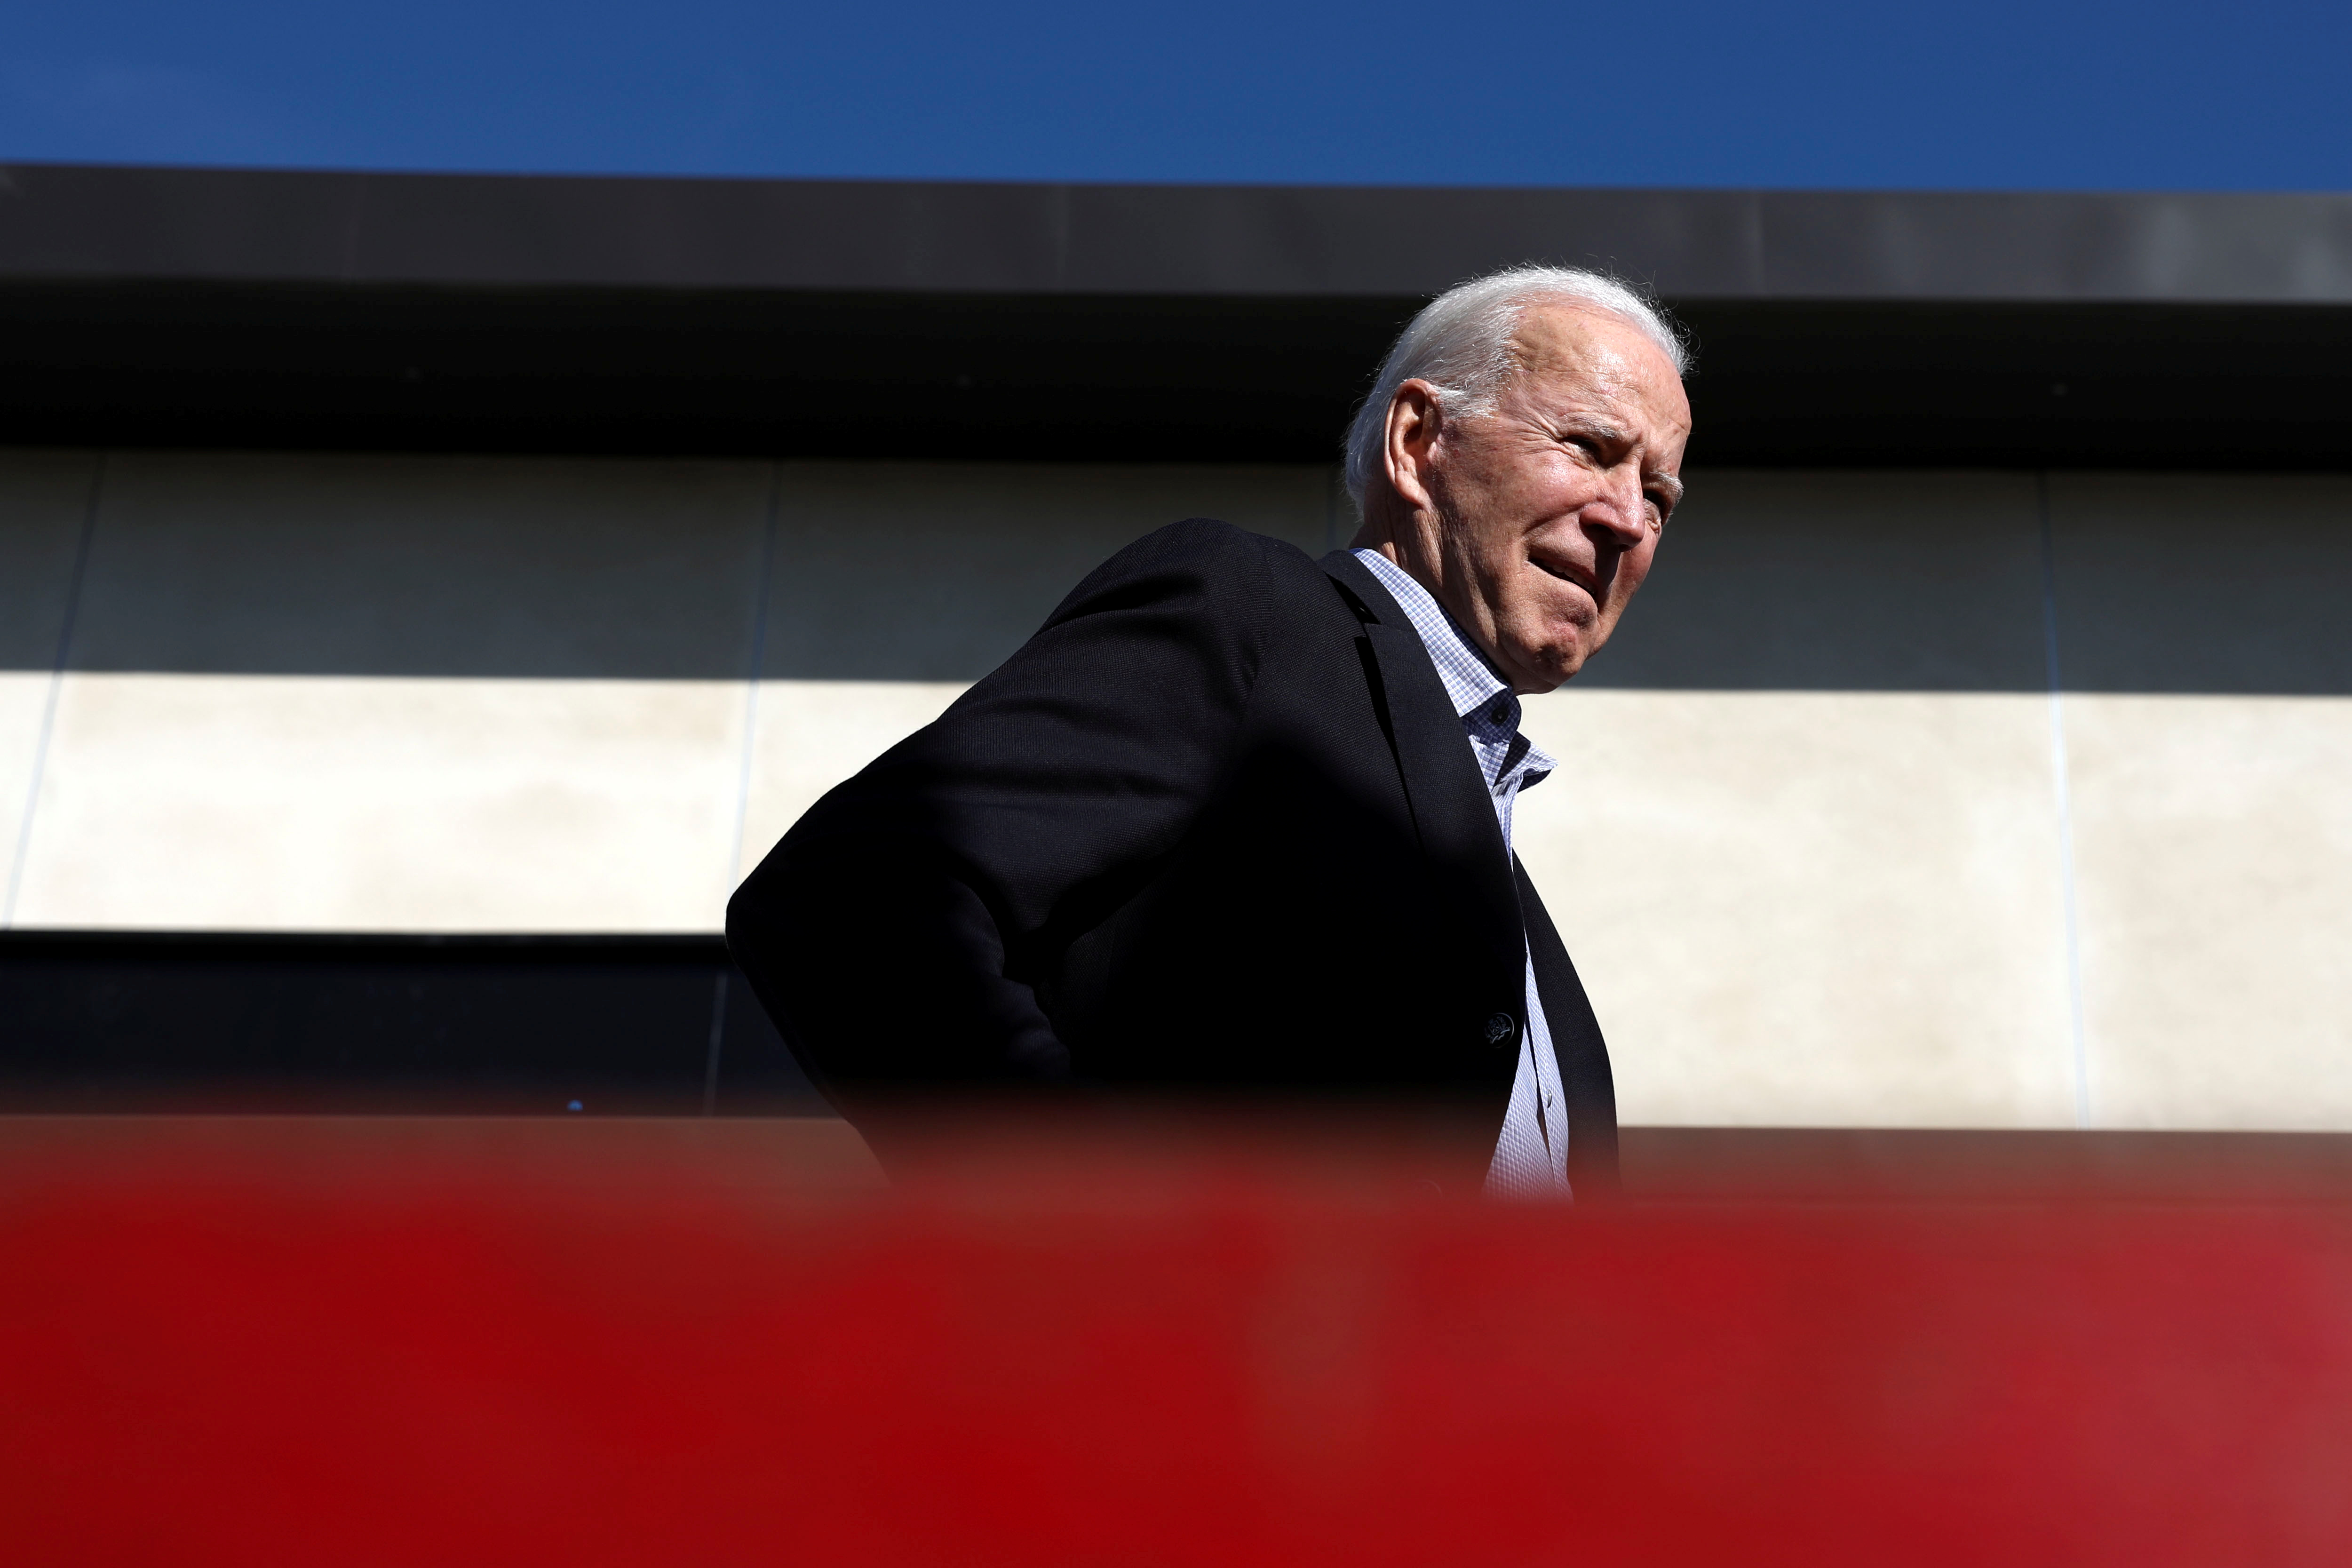 O ex-vice-presidente Biden, em Los Angeles.